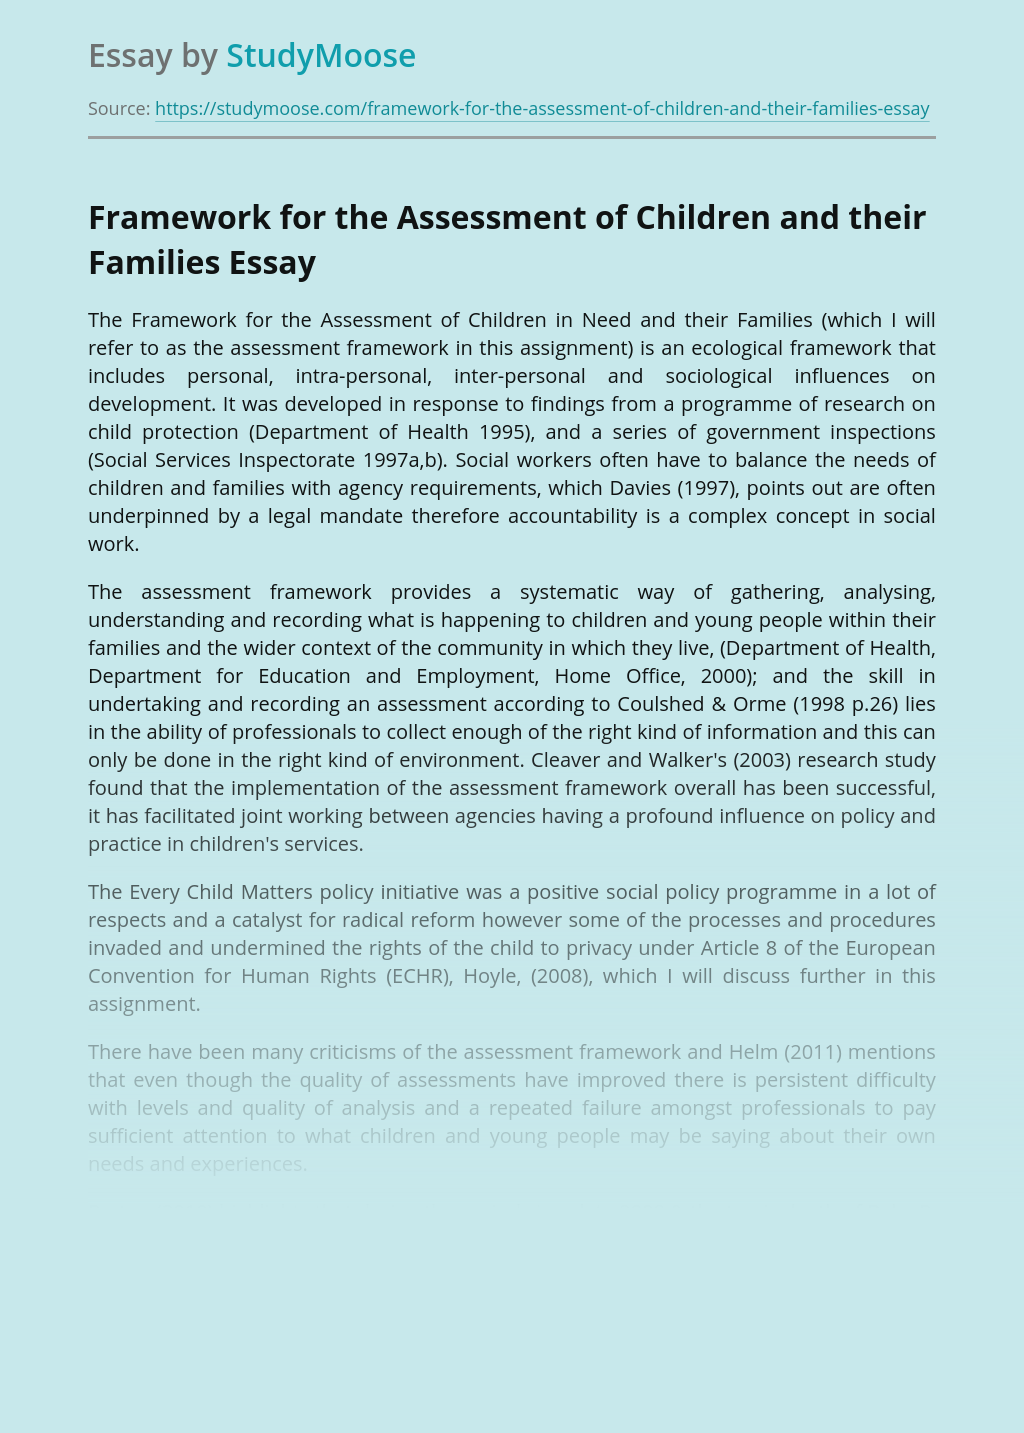 Framework for the Assessment of Children and their Families